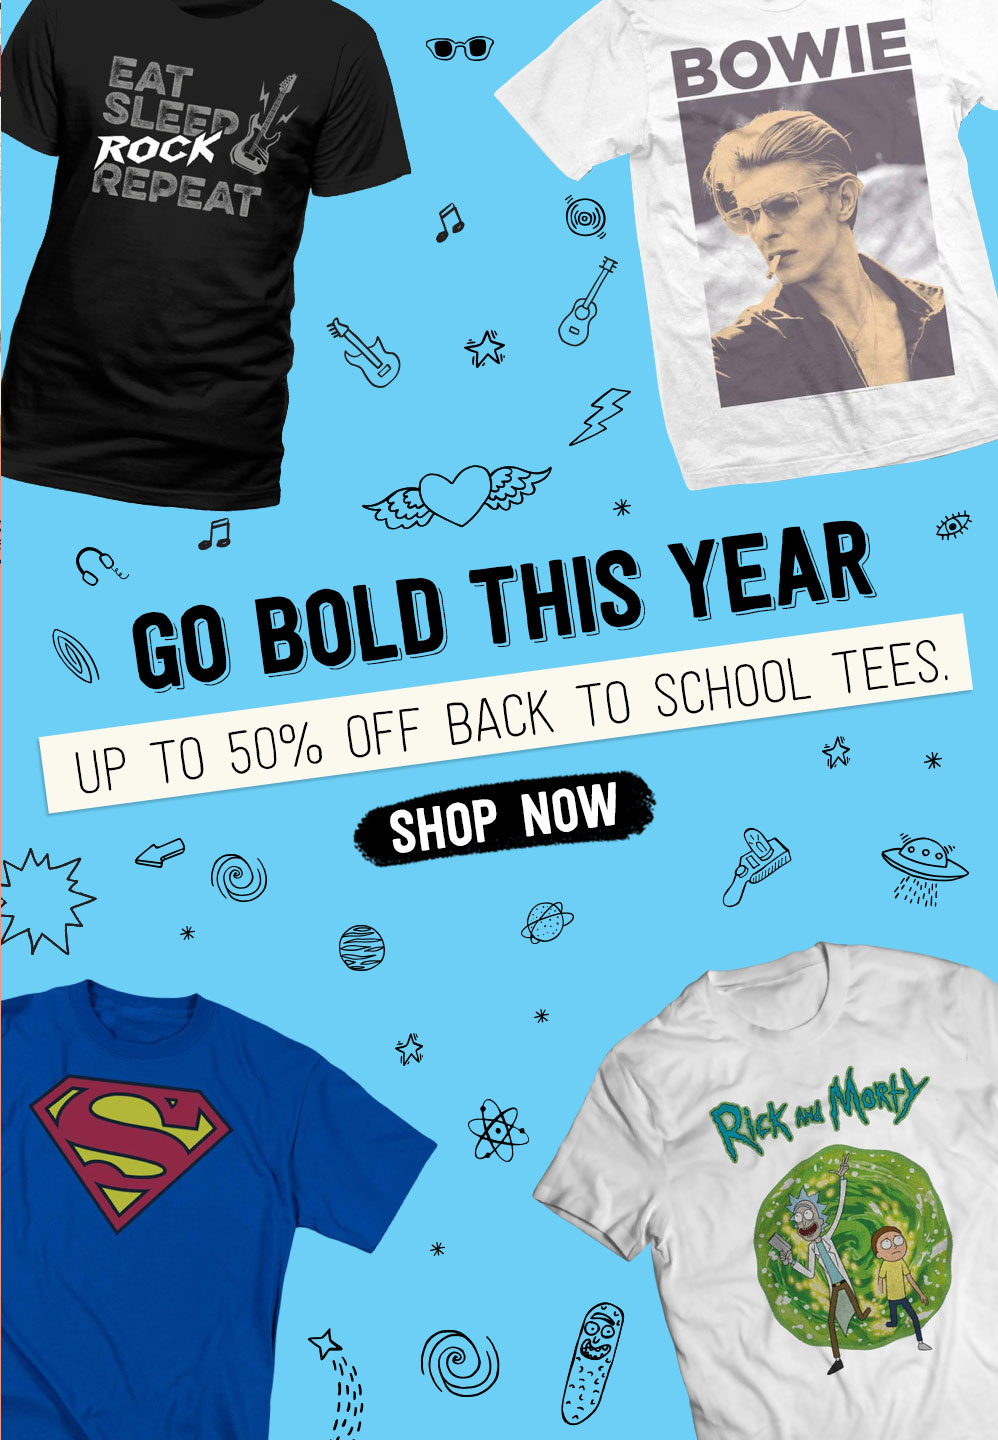 GO BOLD THIS YEAR. Back to school tees for £9.99. Shop Now